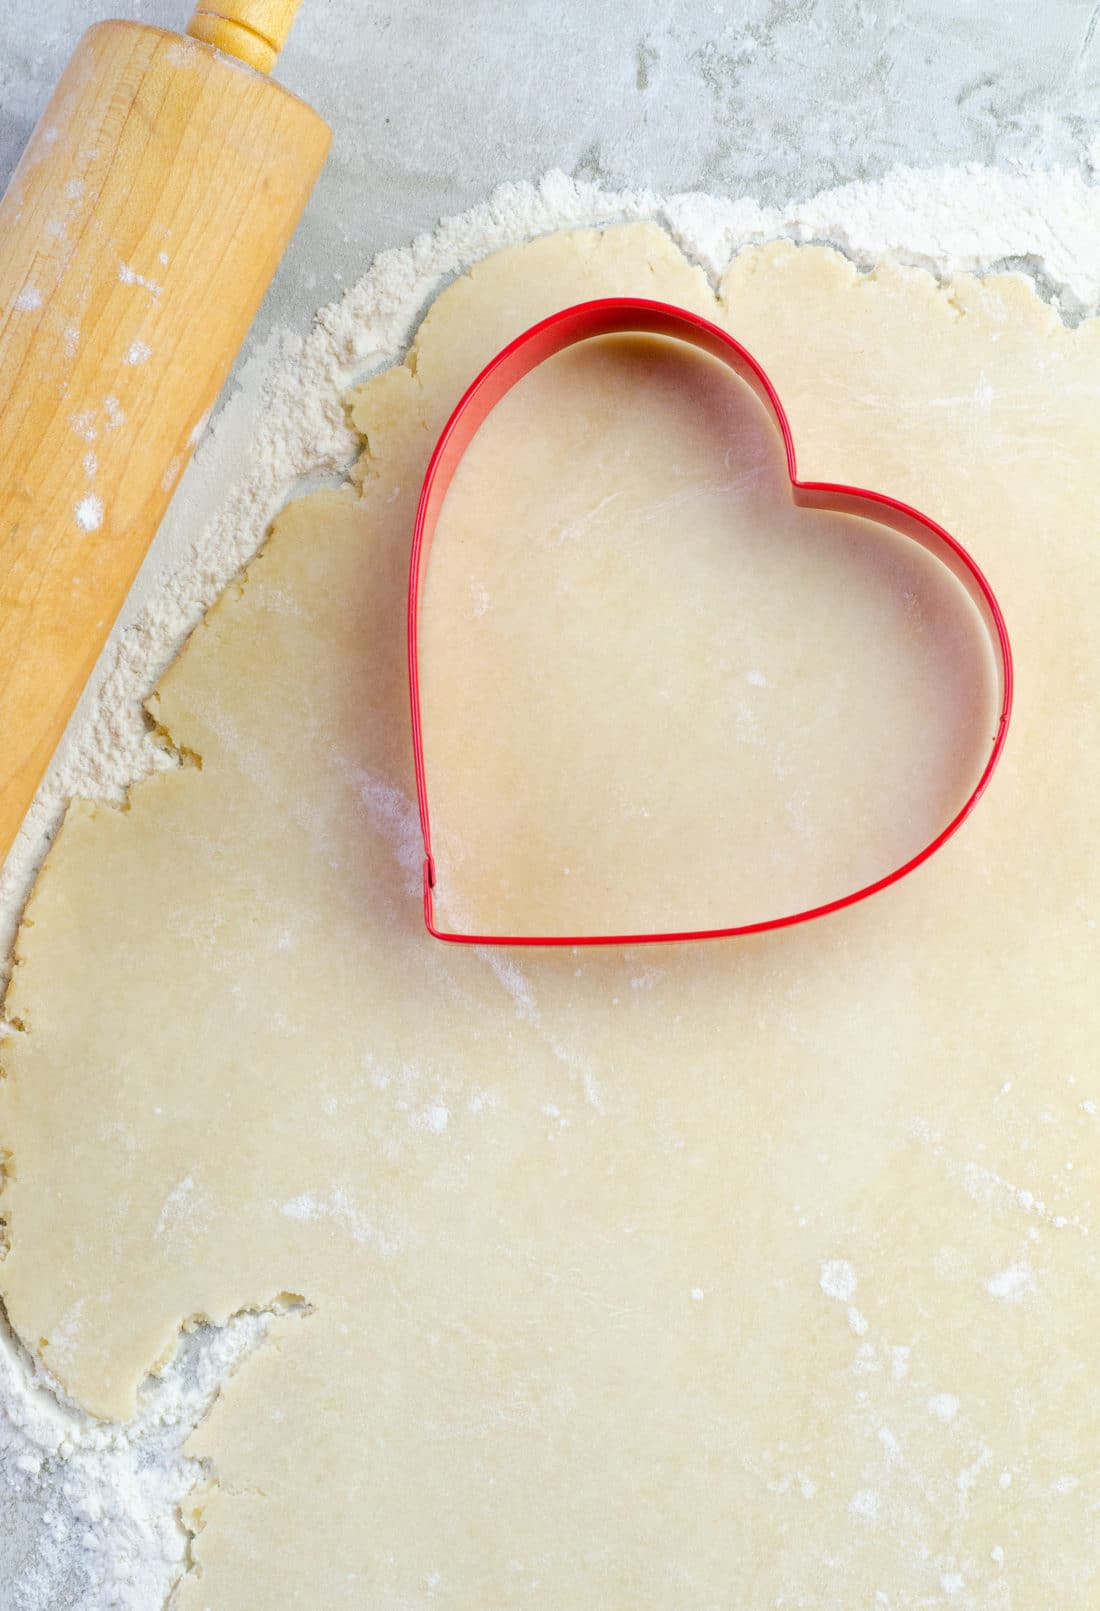 Butter Pie Crust. Say I heart you to someone special this Valentine's Day with a delicious homemade treat. Try my super easy to make Chocolate Cherry Hand Pies which include a from scratch buttery flaky pie crust.